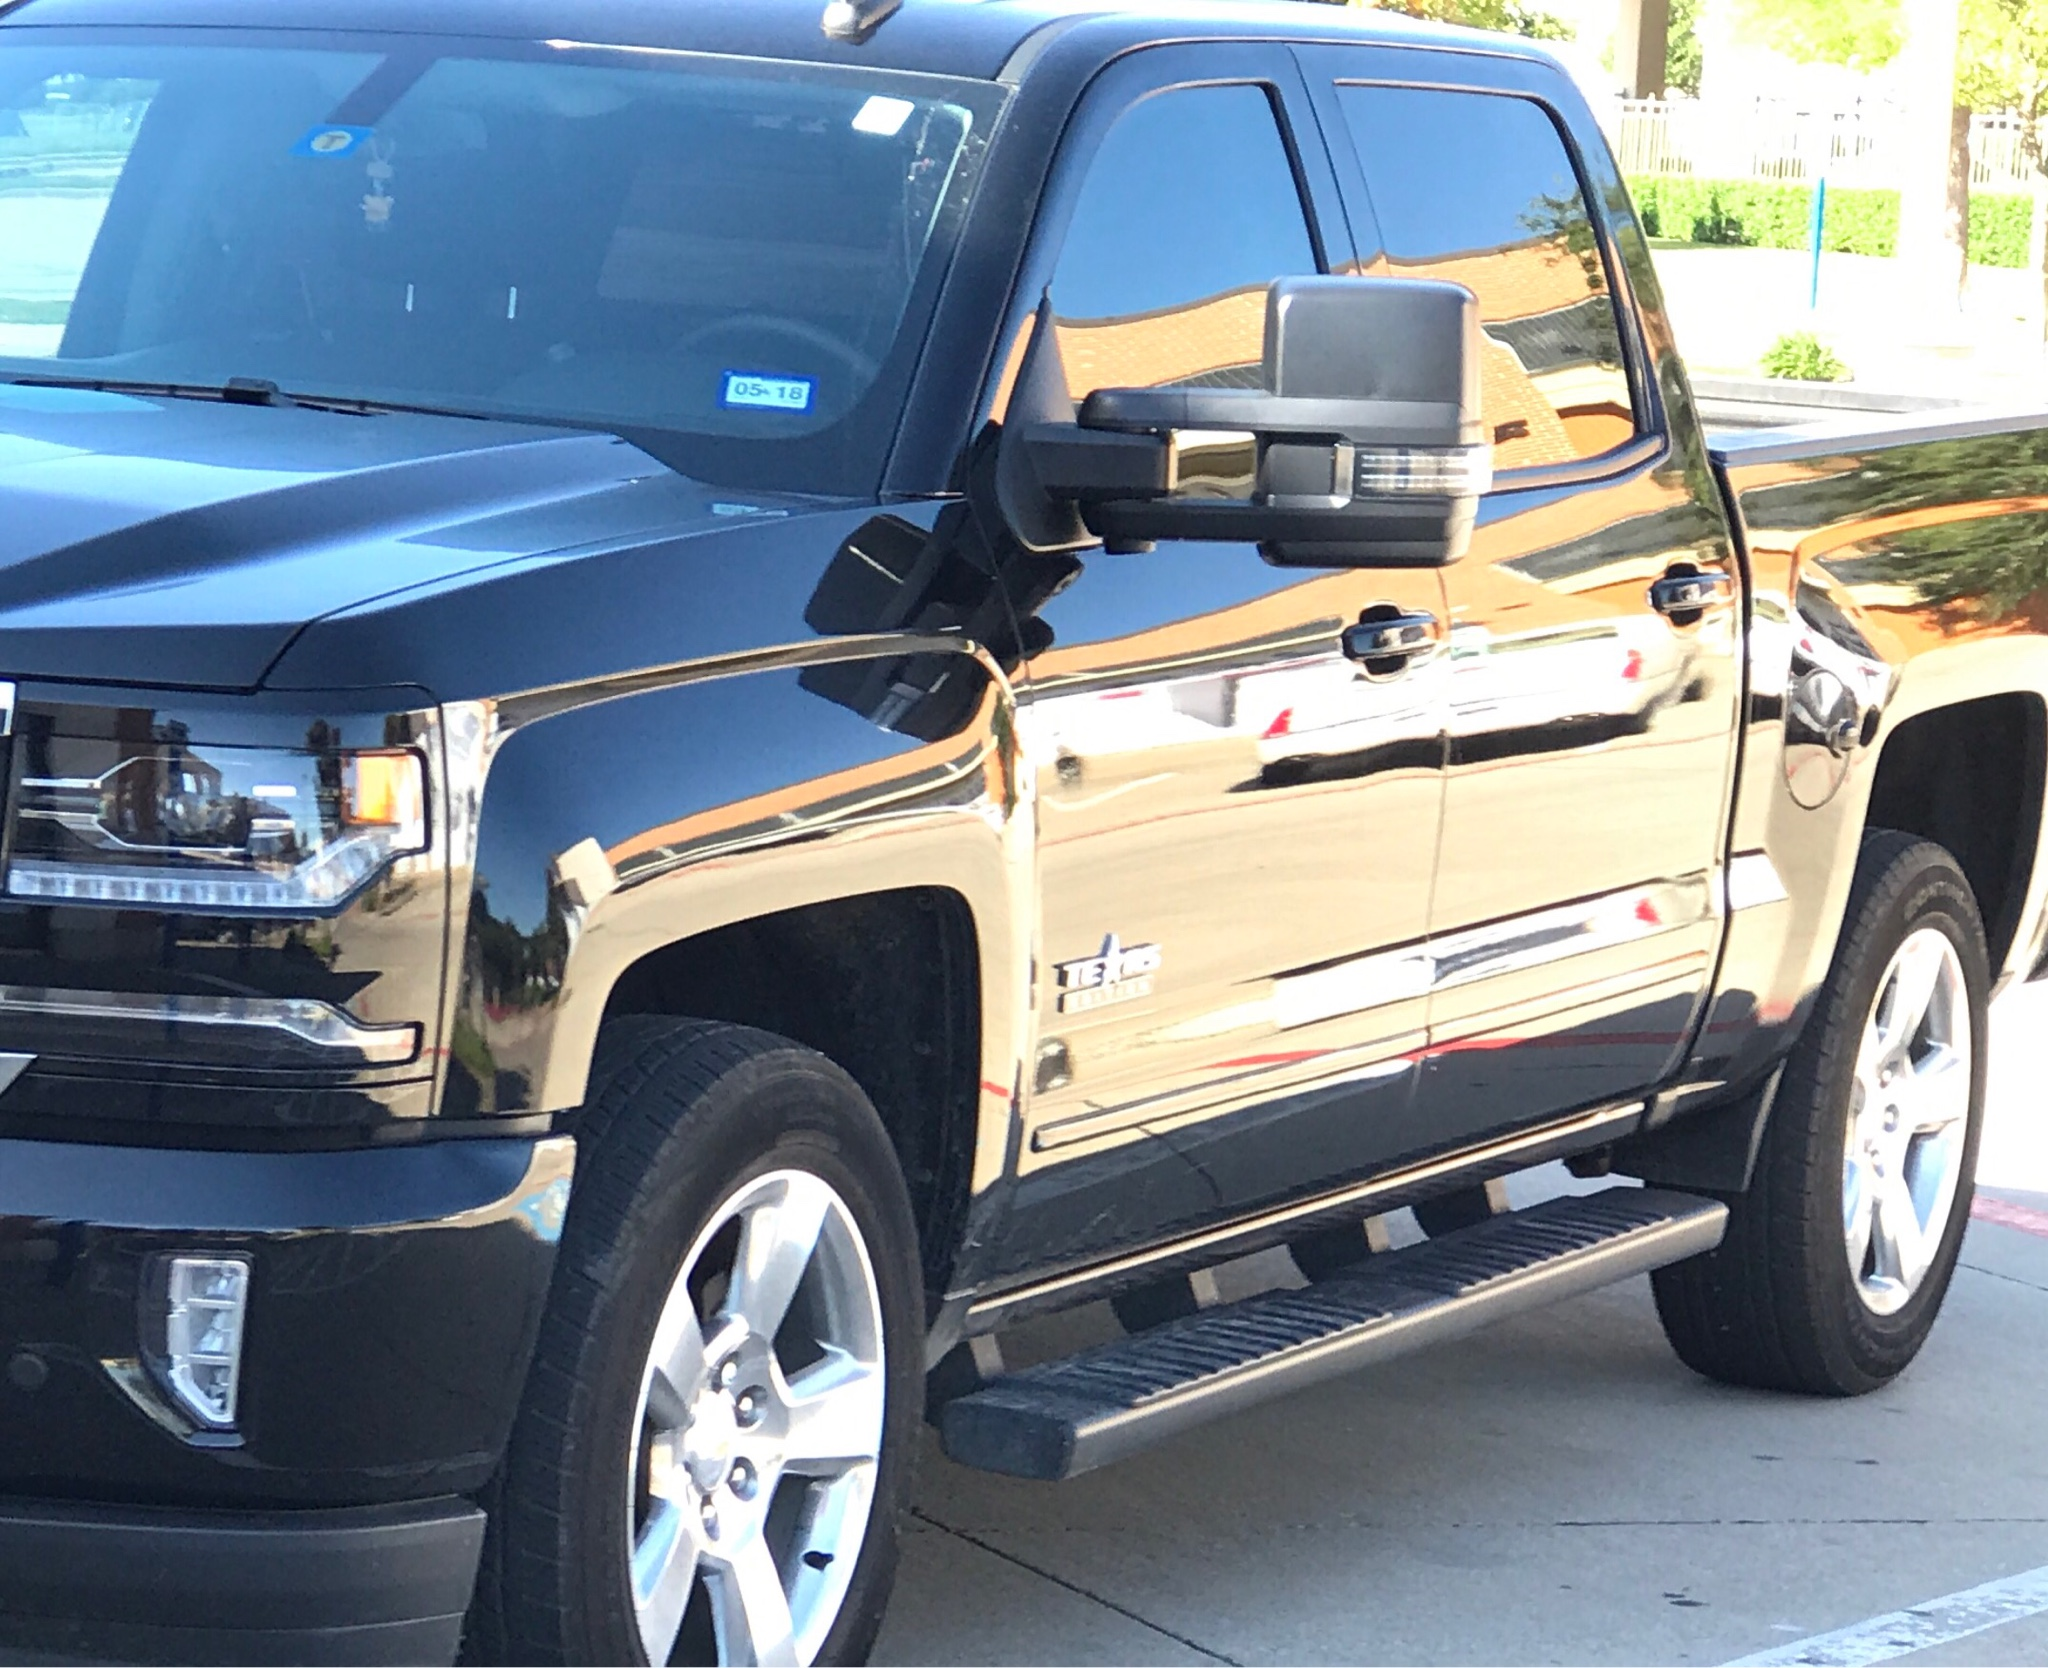 Pics of 1500s with tow mirrors - 2014 - 2018 Chevy ...